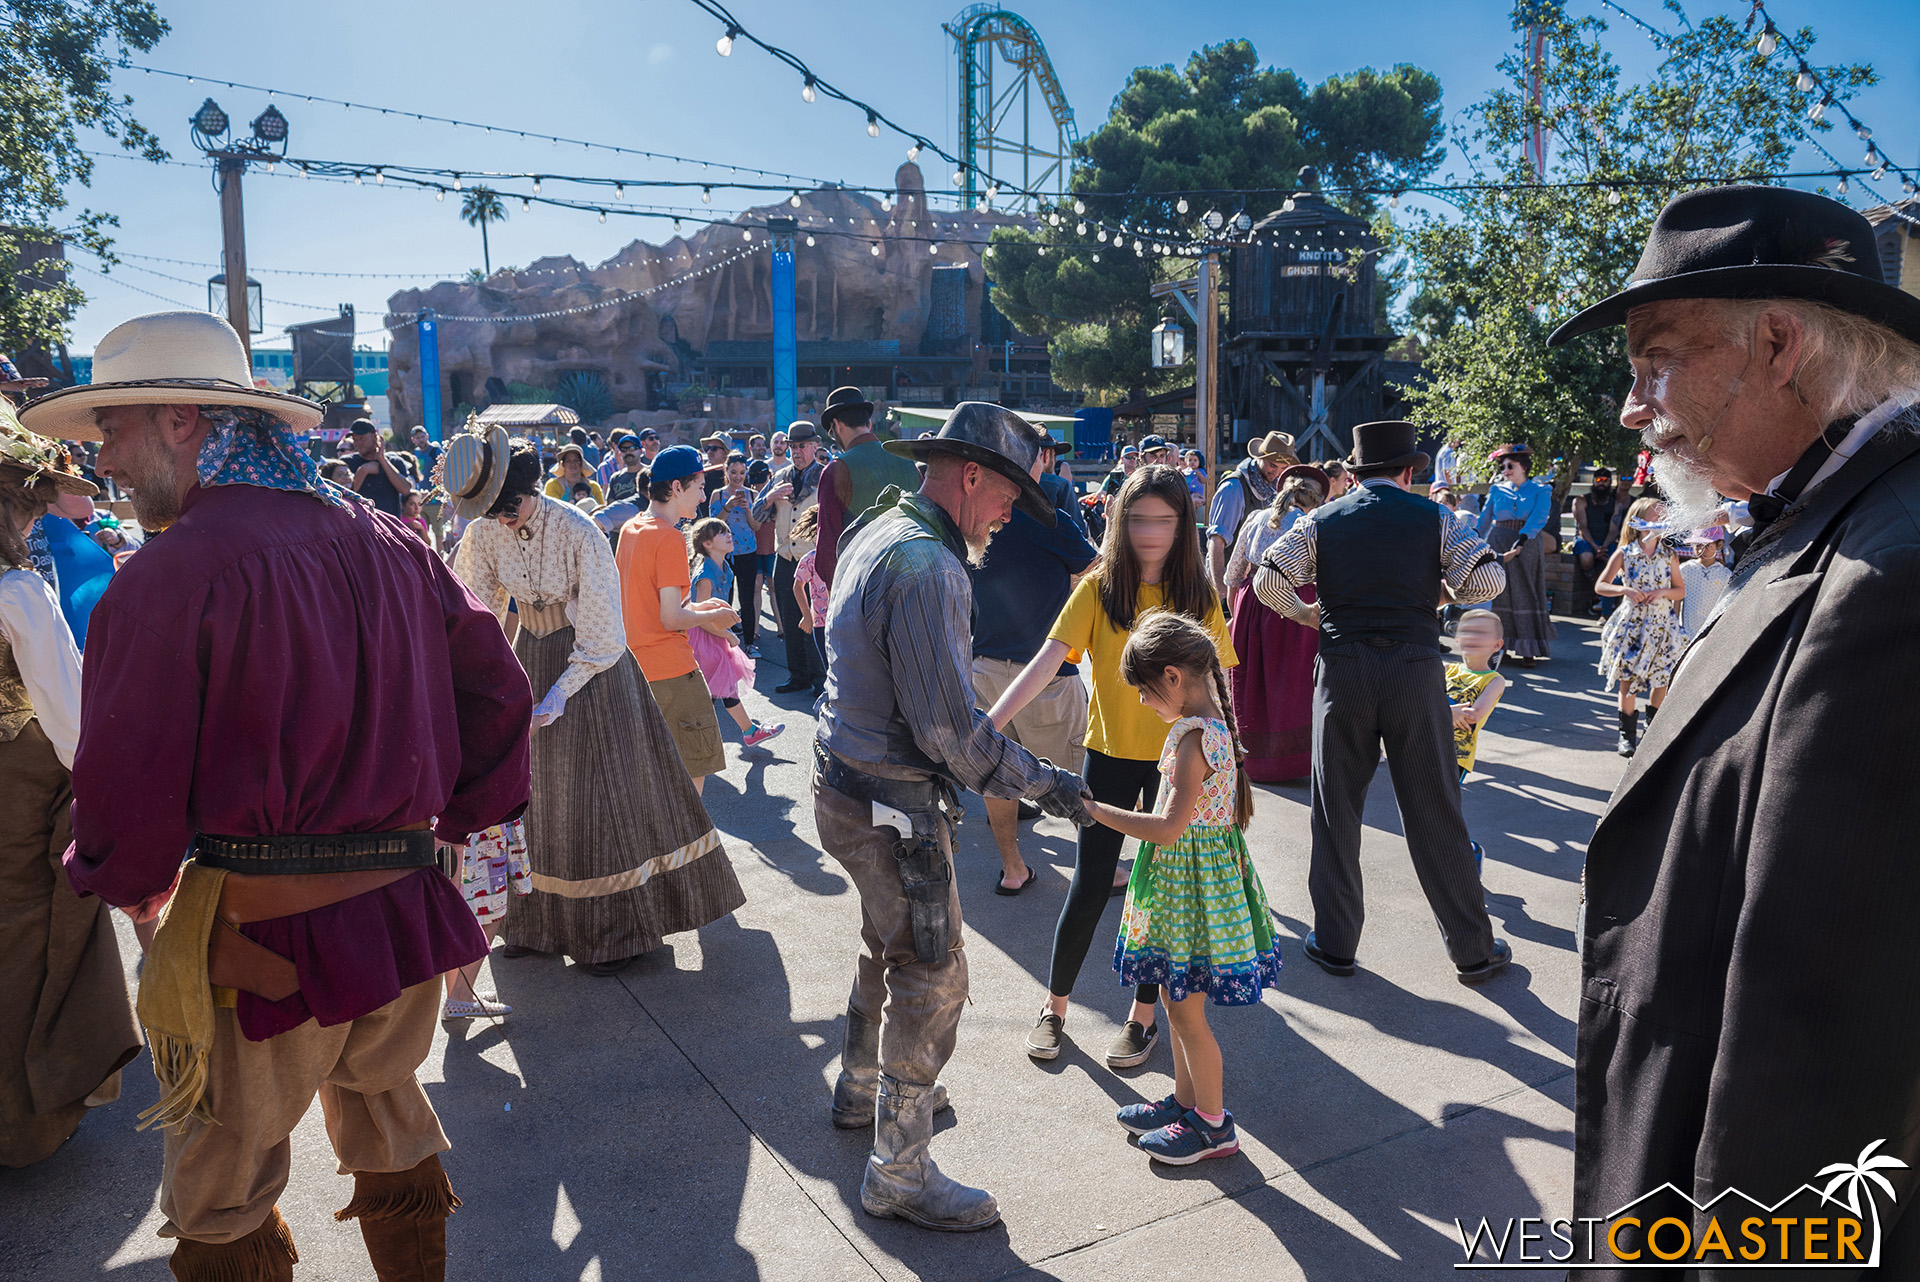 The Hoedown is the culmination of guest interaction that has occurred throughout the day.